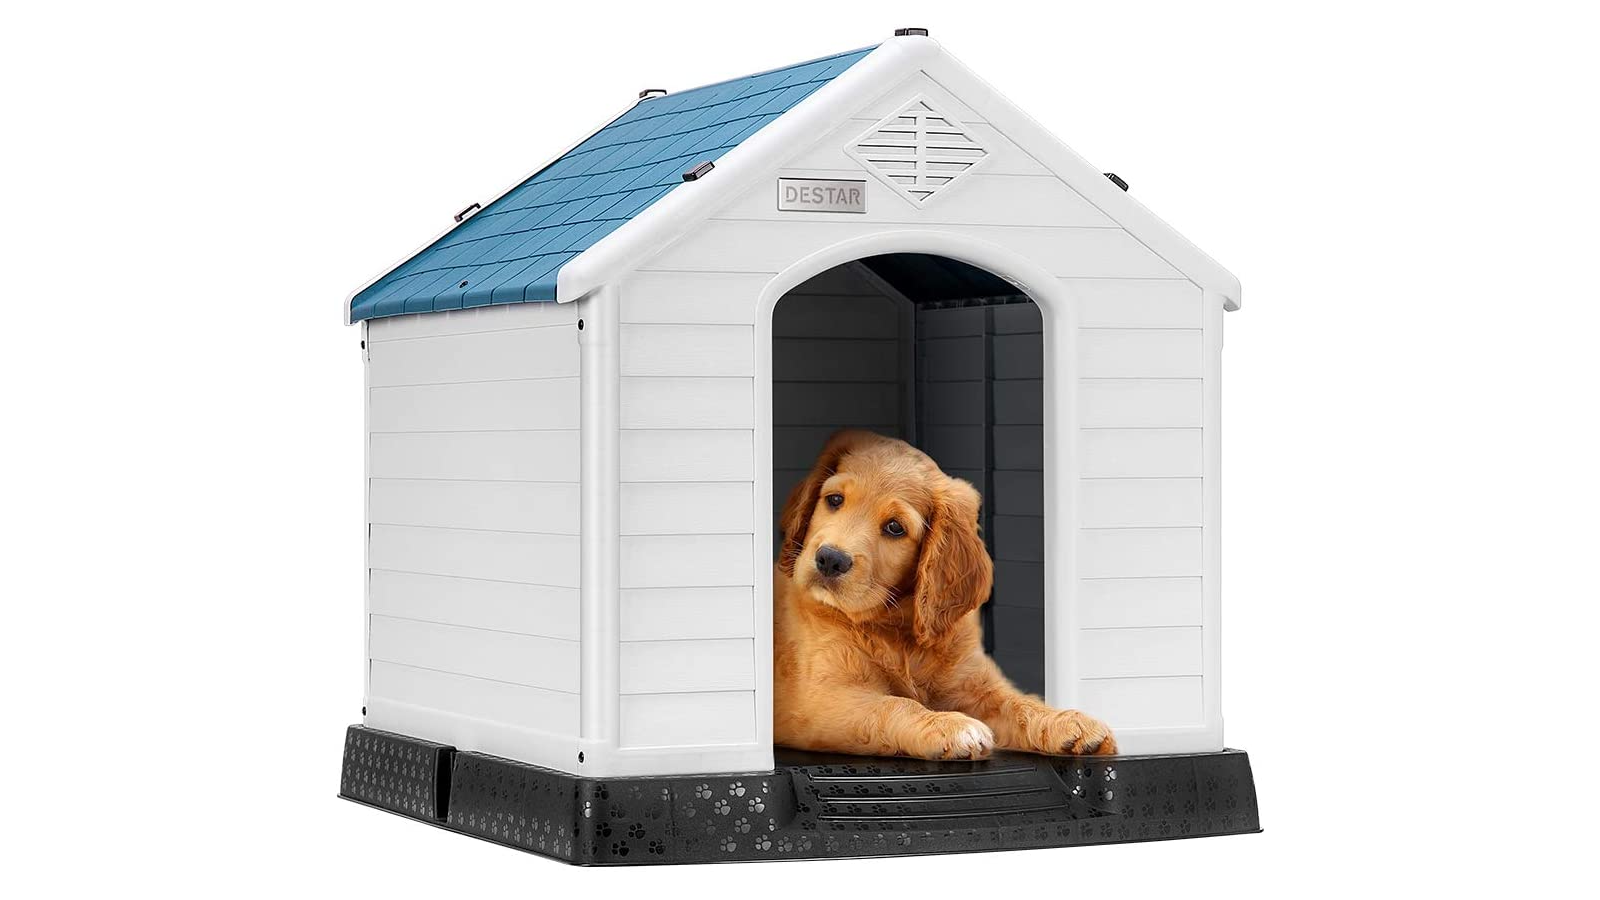 White plastic doghouse with blue roof and a puppy laying inside.